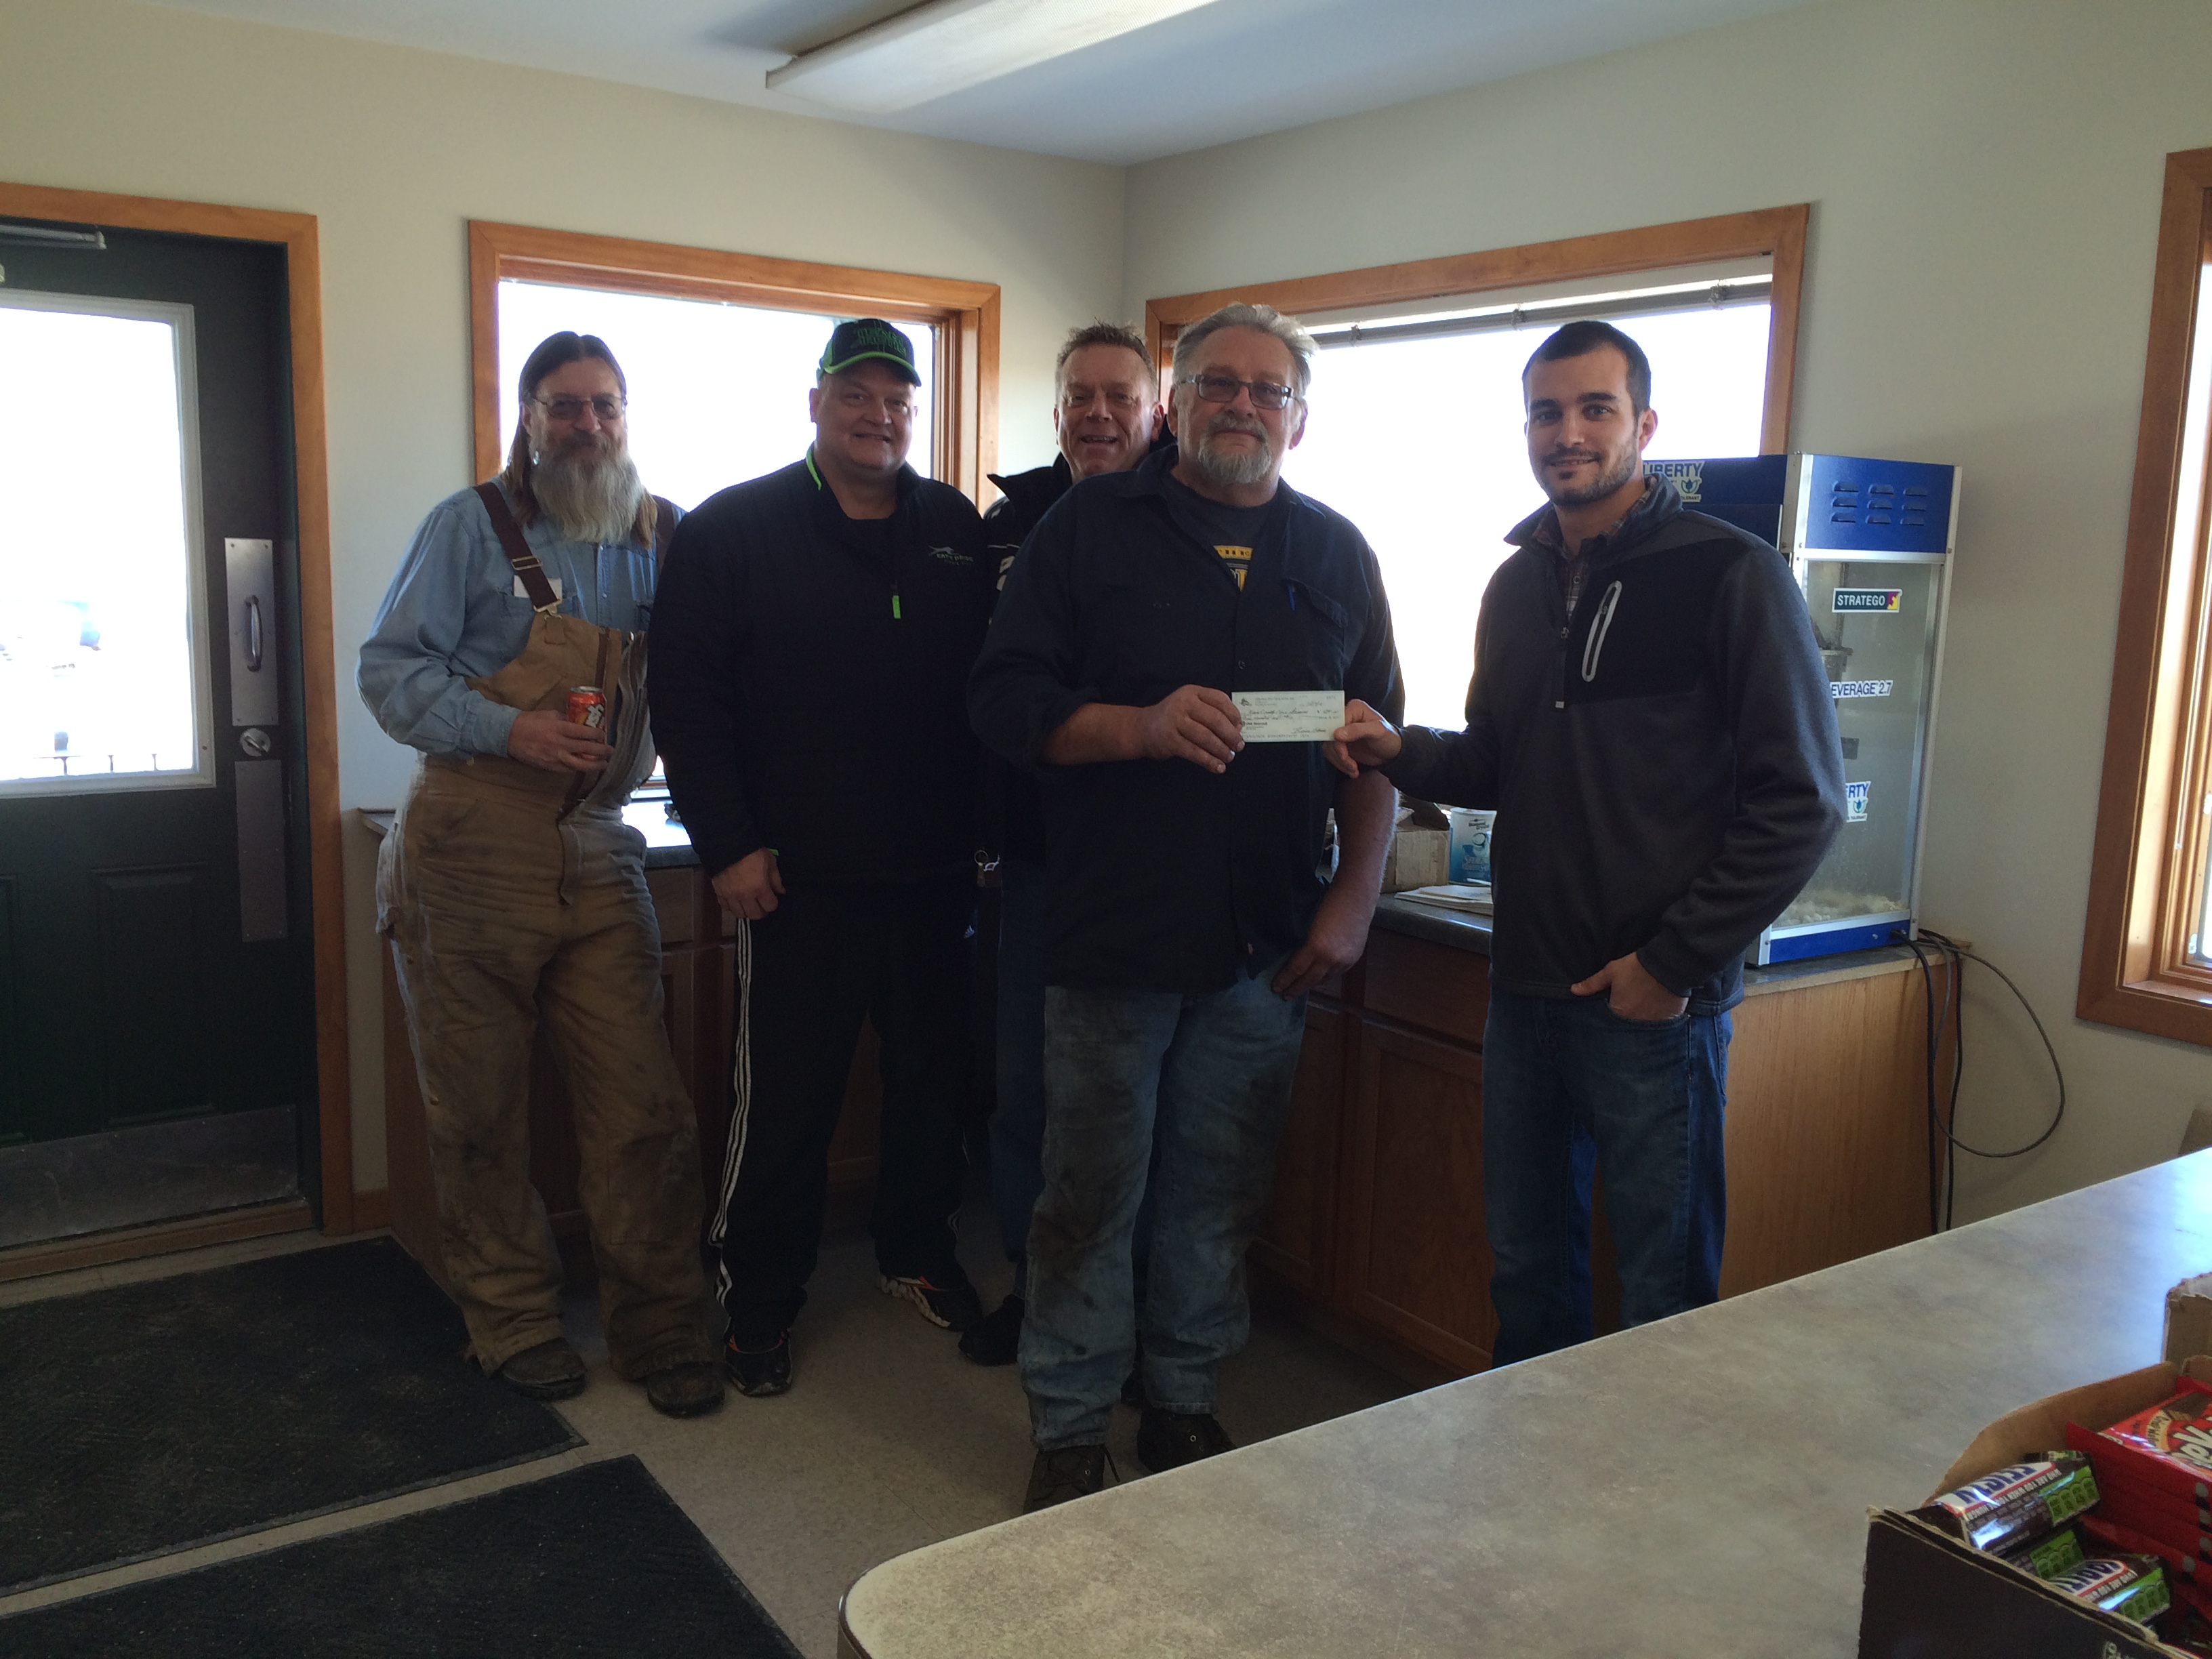 Brad Fabrizius, Kane County Corn Growers plot chairman, accepts a donation by the DeKane SnowTrackers snowmobile club